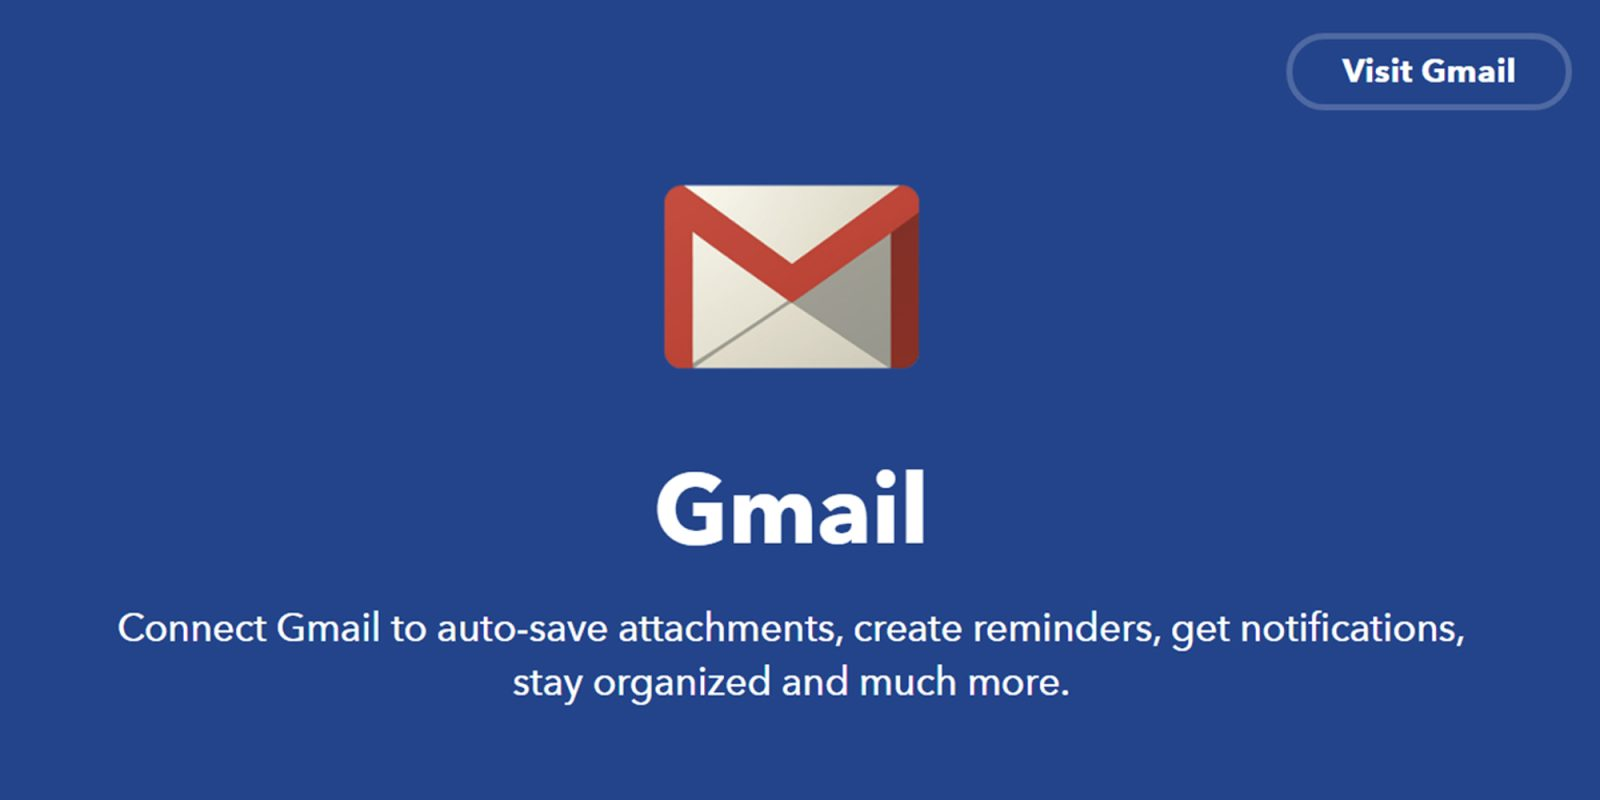 Gmail will drop support for IFTTT integration starting March